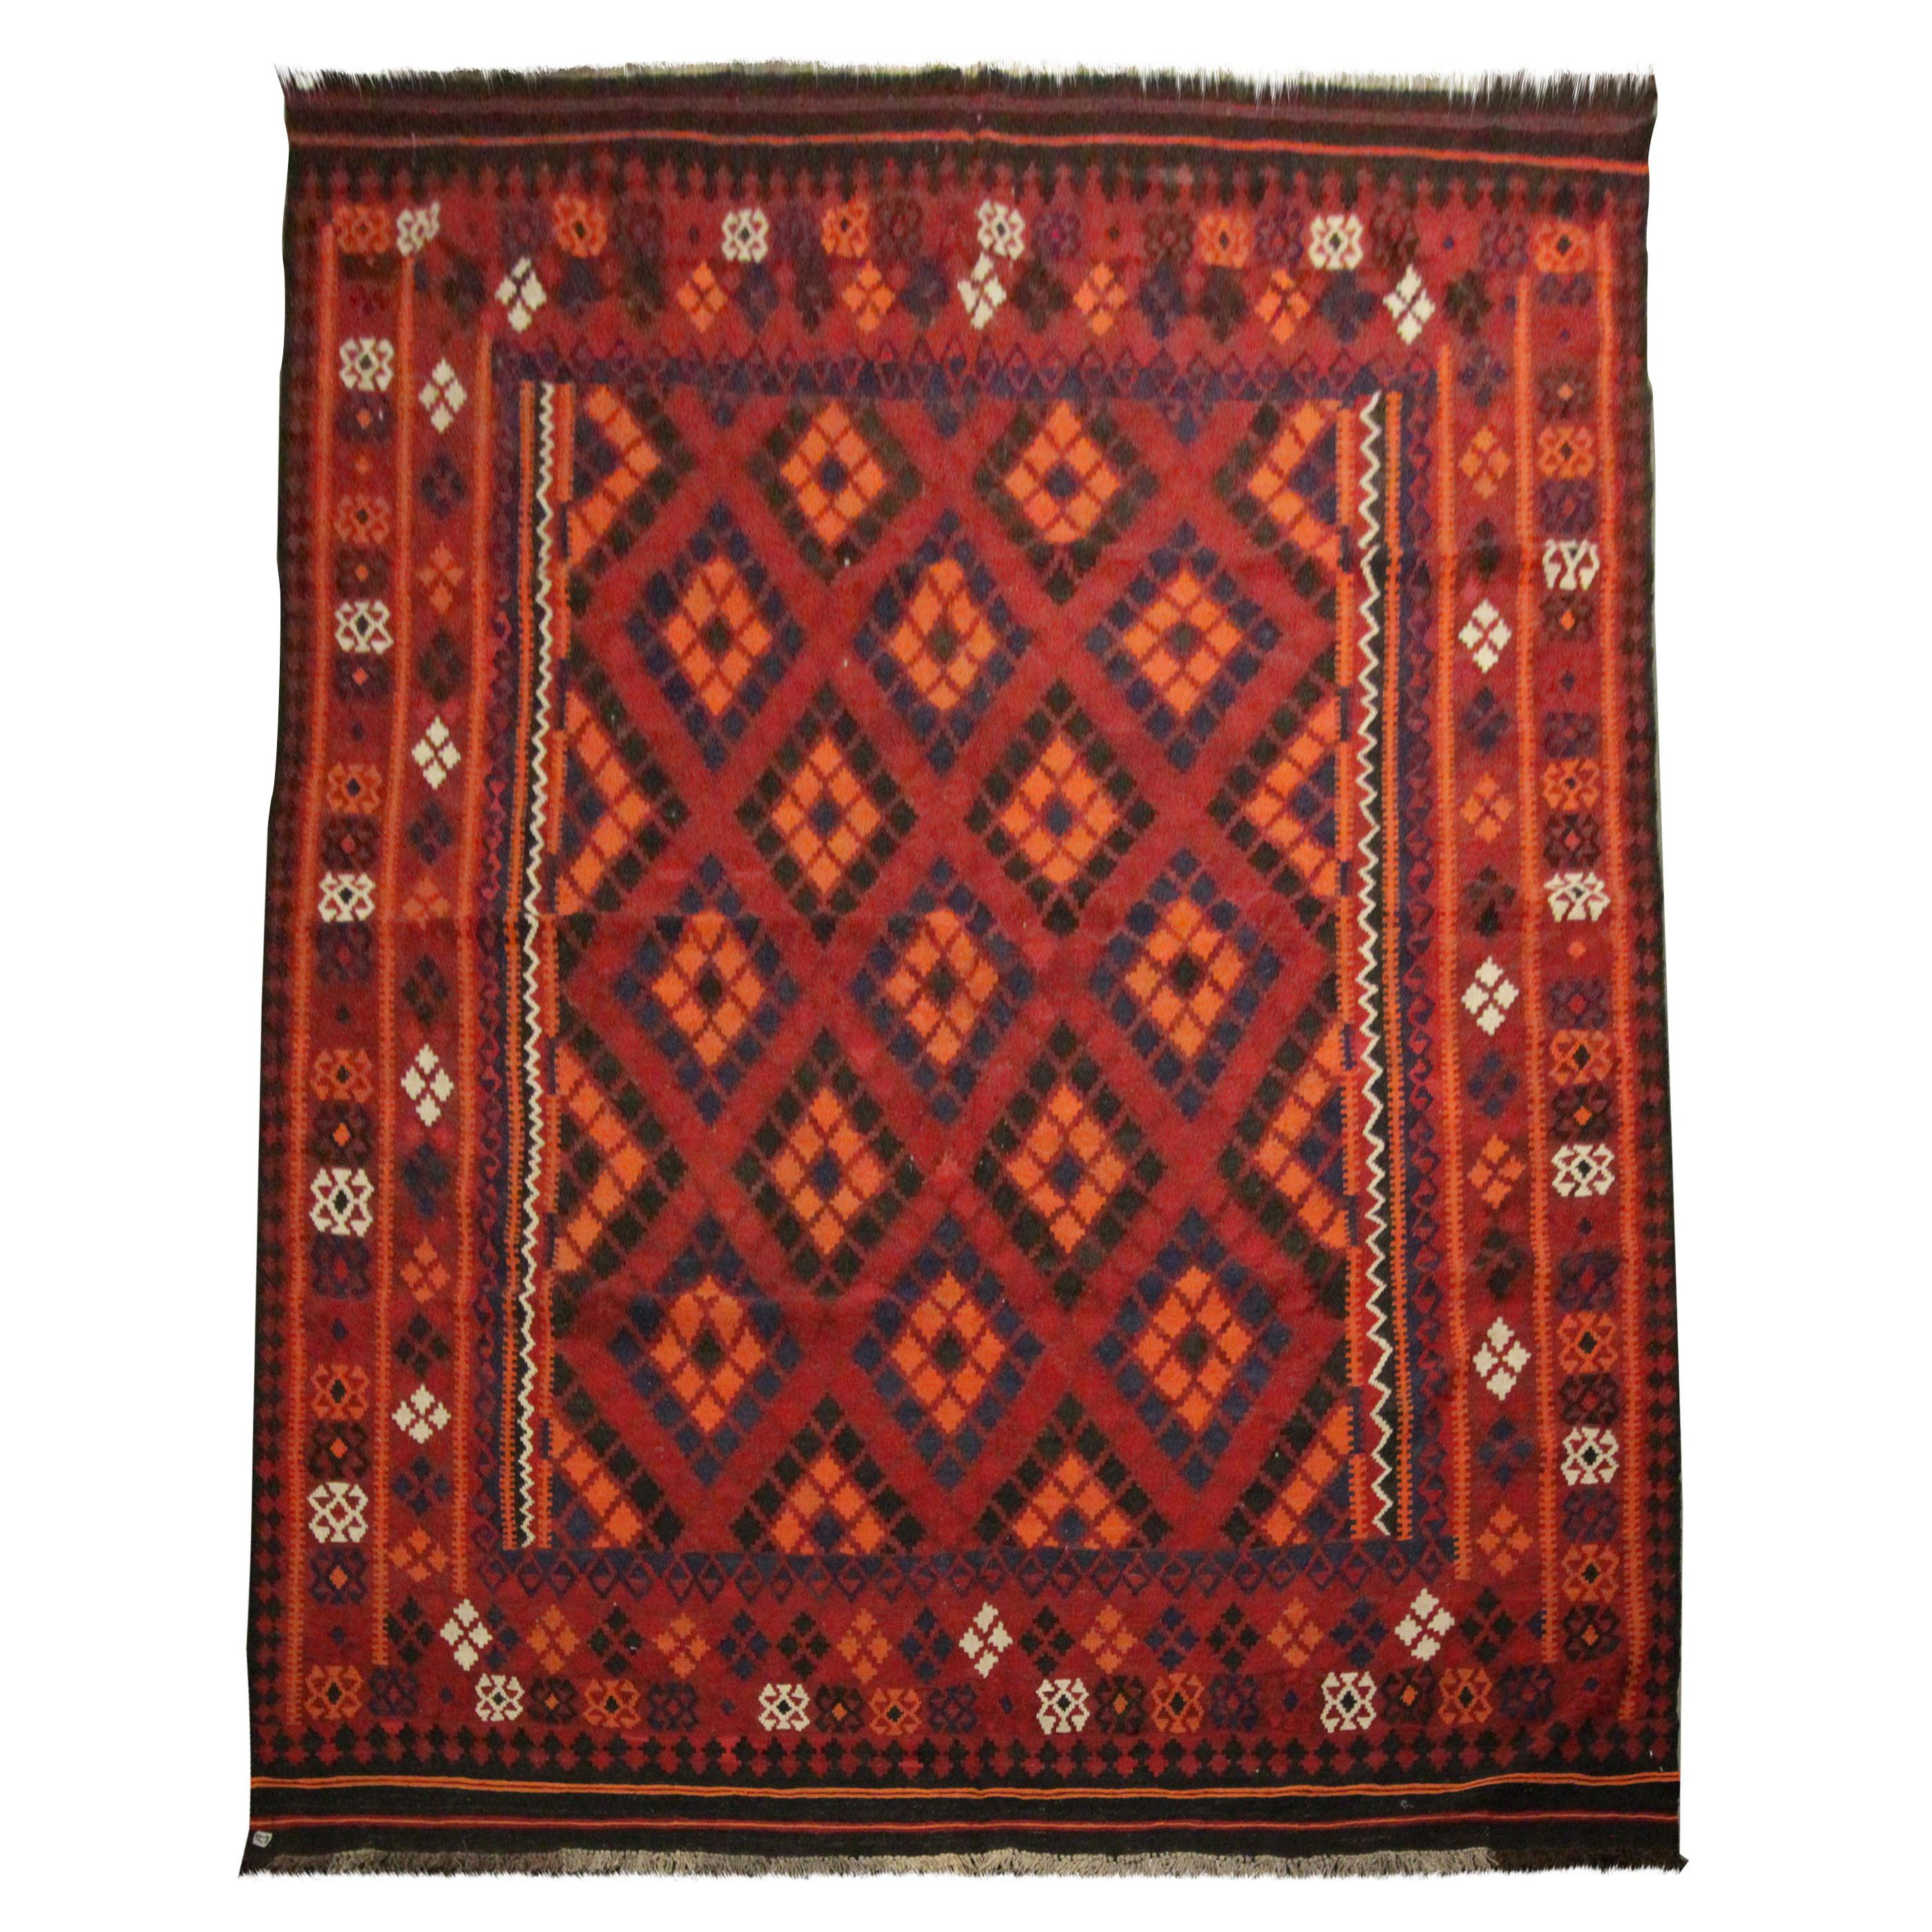 Geometric Kilim Rugs Traditional Handwoven Blue Red Wool Area Rug